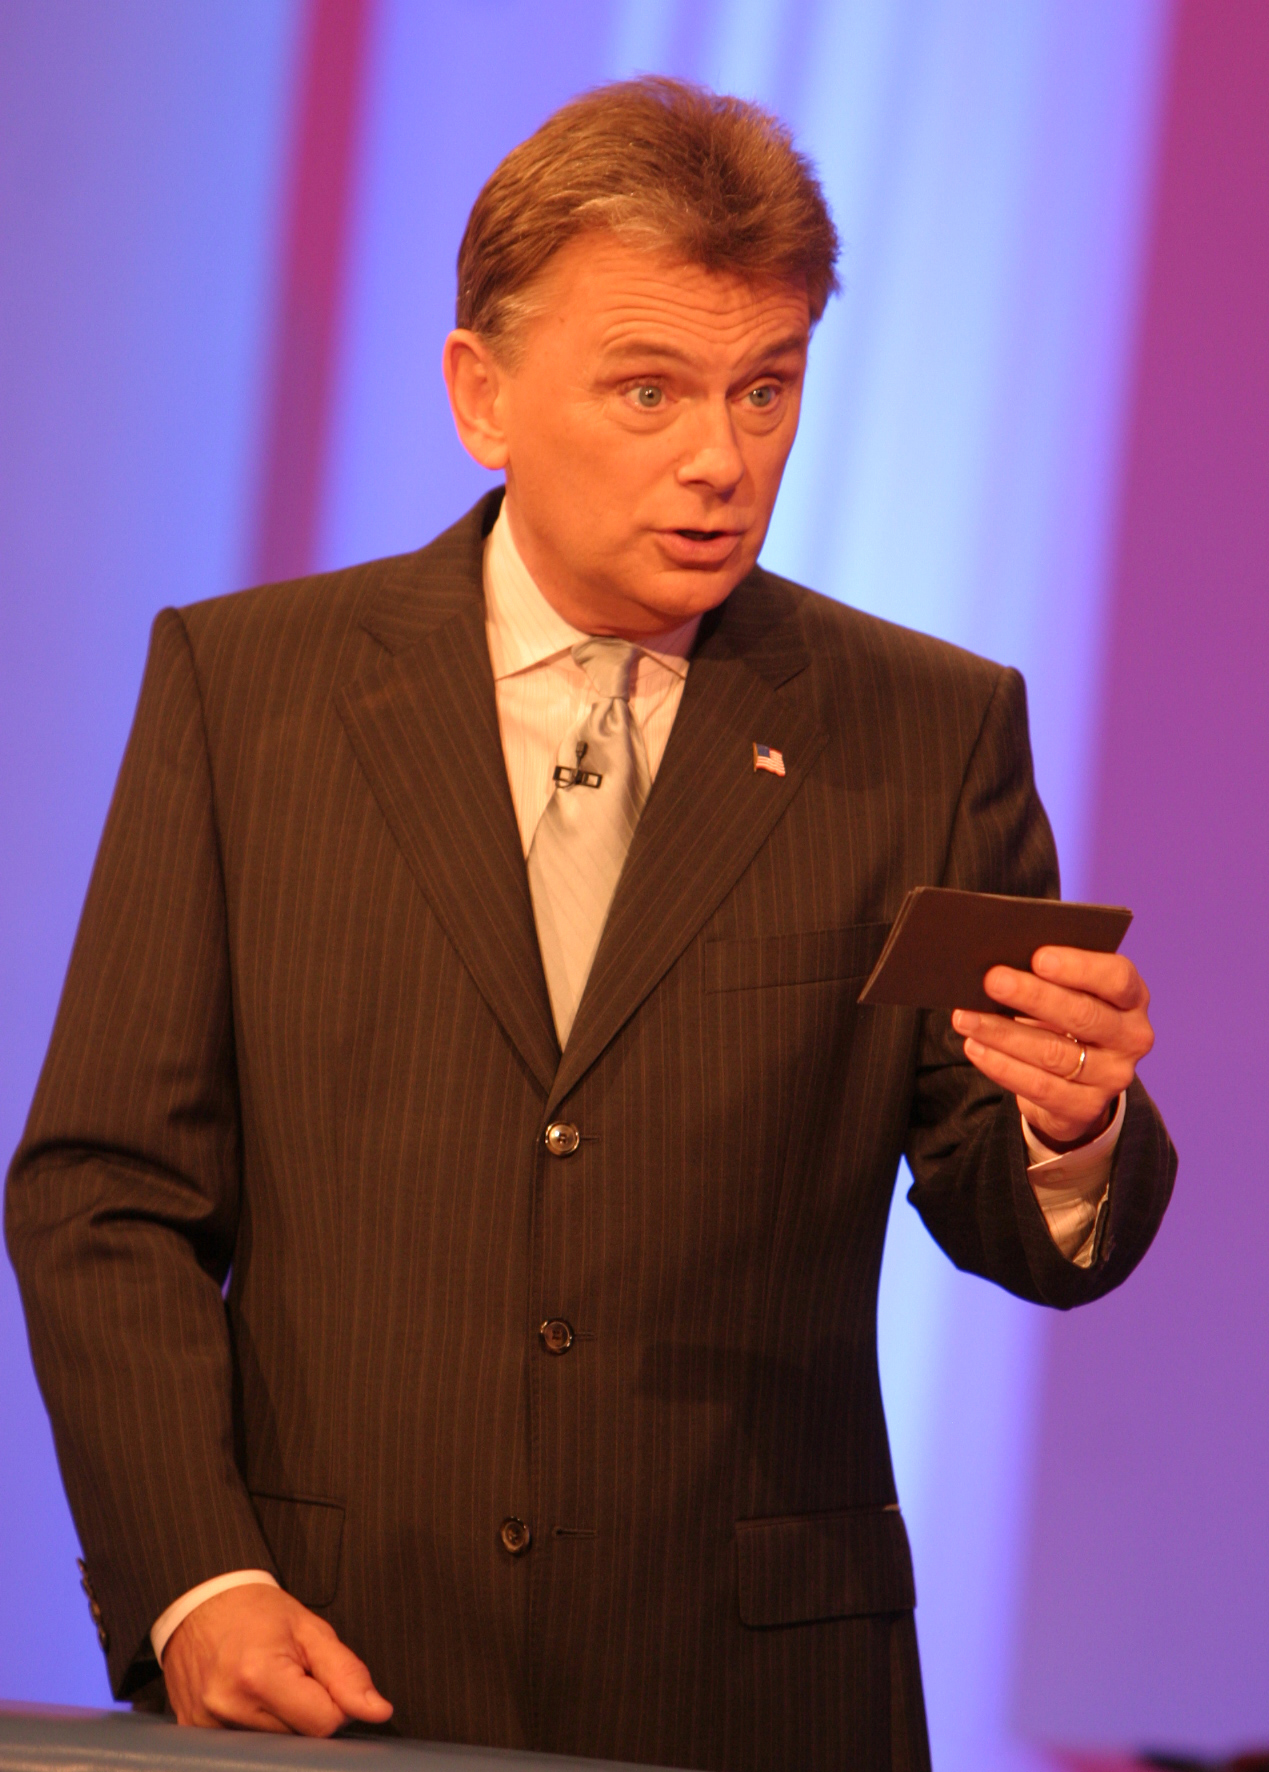 TV host Pat Sajak during the hosting of Wheel of Fortune